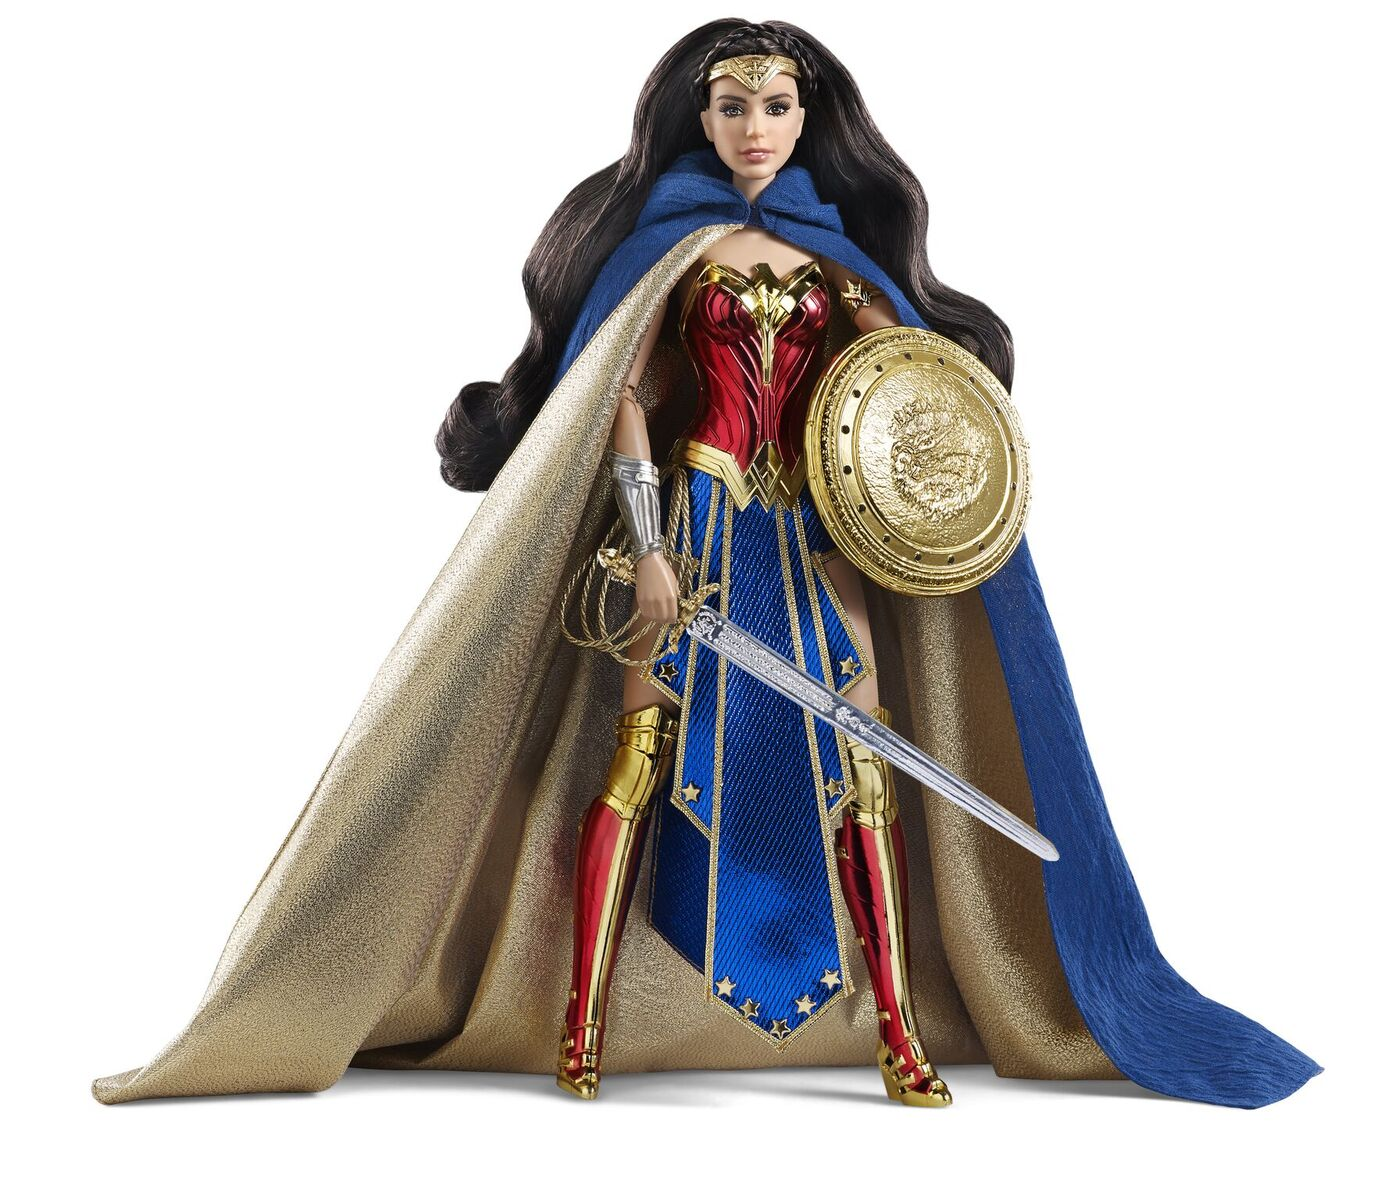 Mattel - SDCC 2016 - Amazon Princess - Wonder Woman - Barbie